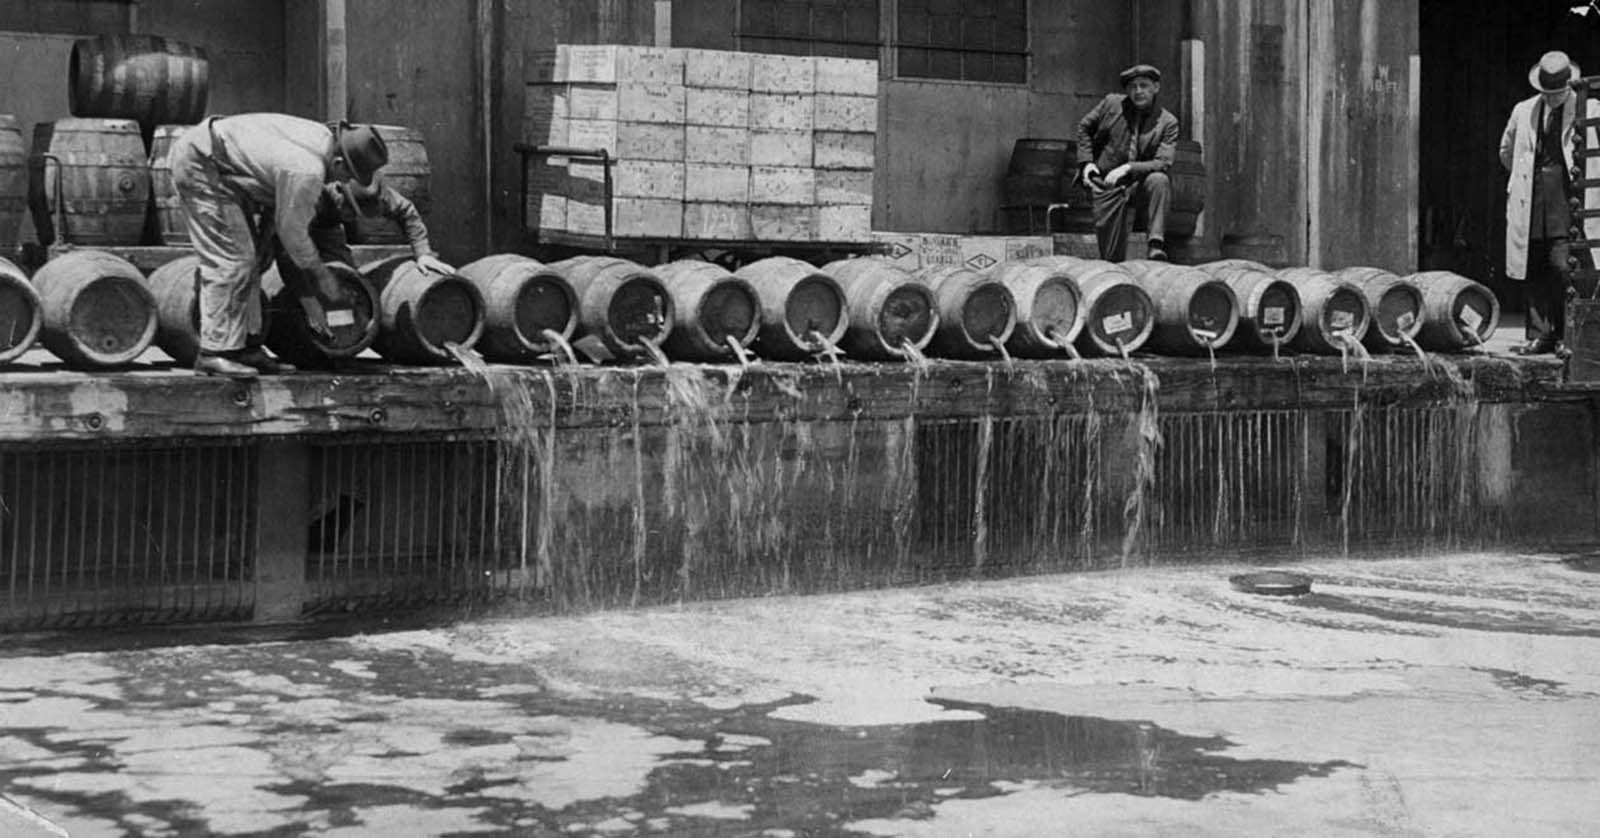 At an army base in Brooklyn, men drain 10,000 barrels of beer into New York Harbor.